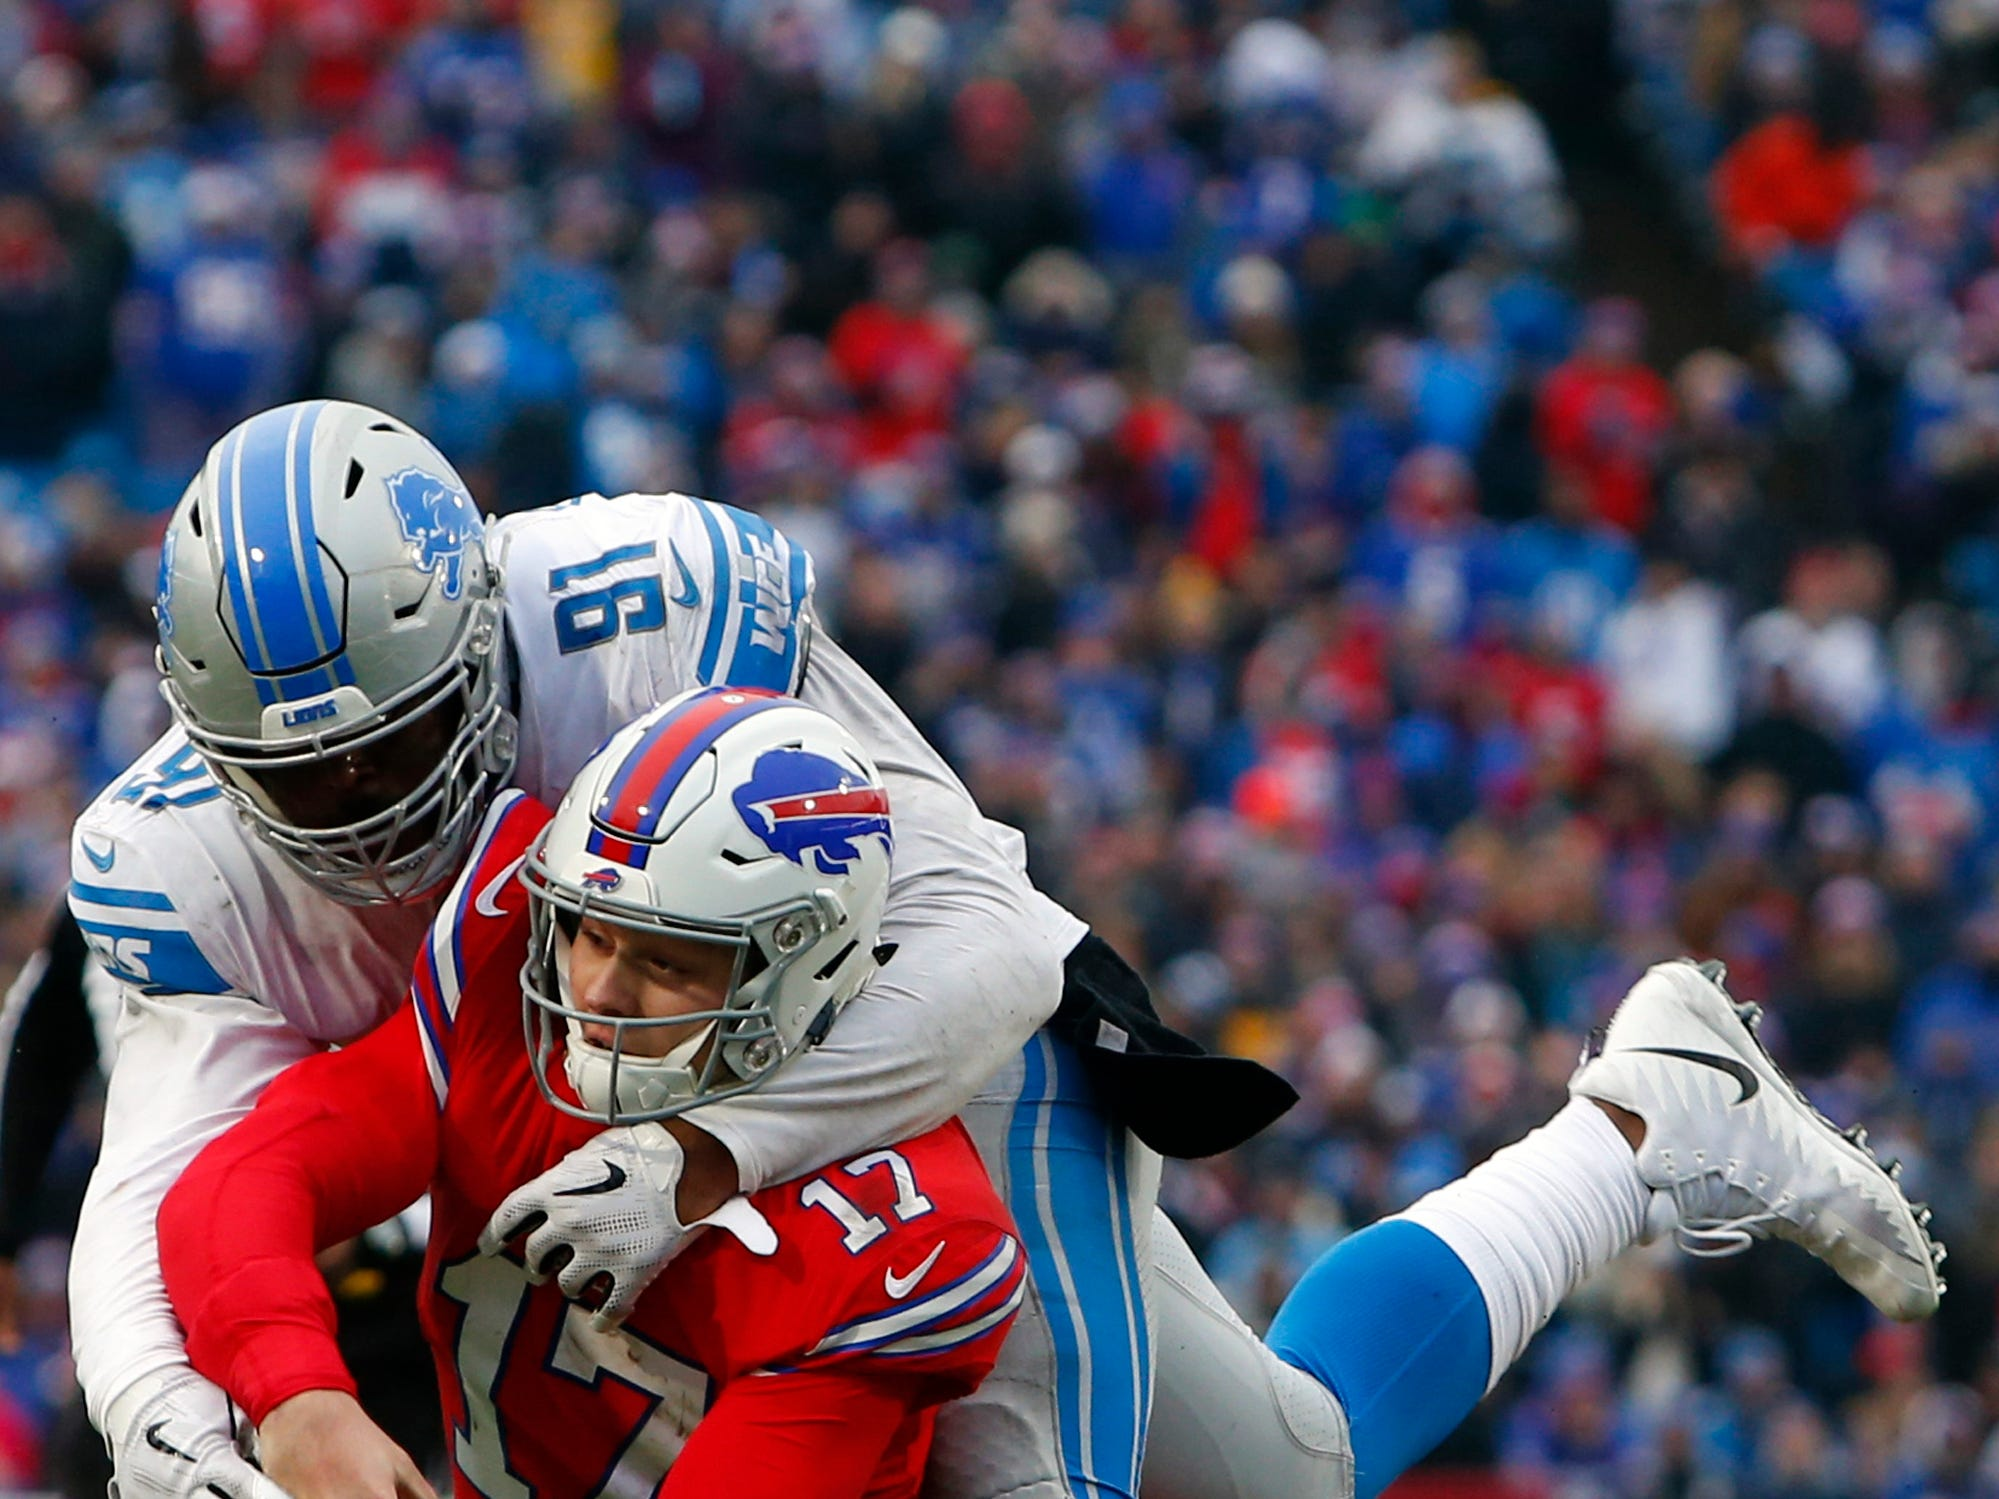 Buffalo Bills quarterback Josh Allen (17) is tackled by Detroit Lions defensive tackle A'Shawn Robinson (91) during the second half.